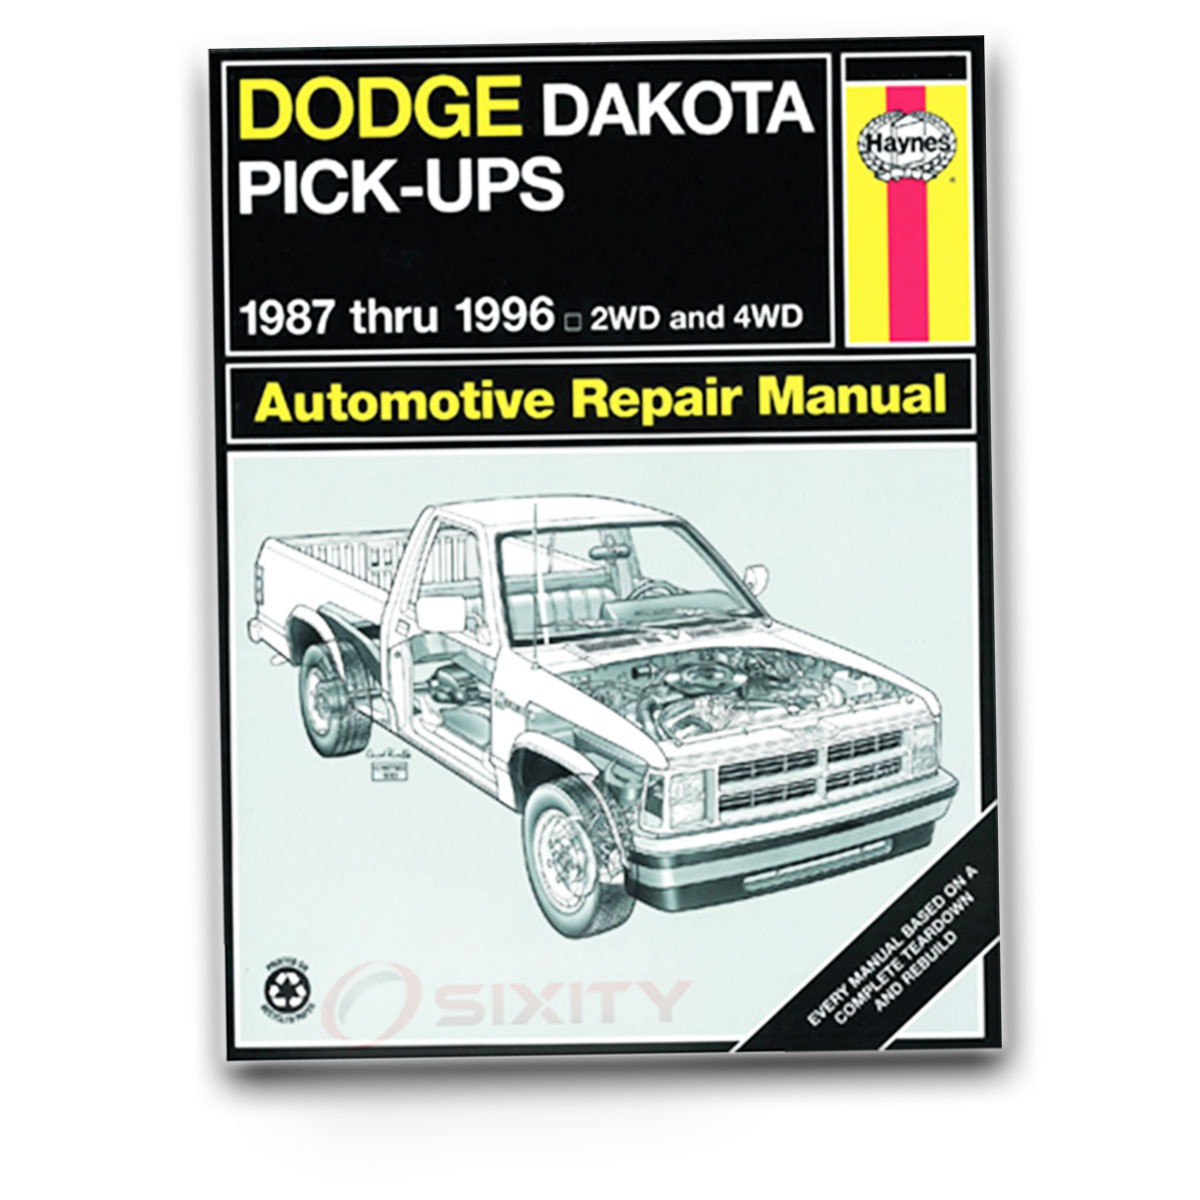 Haynes Repair Manual 30020 for Dodge Dakota Pick-up 87-96 Shop Service kj